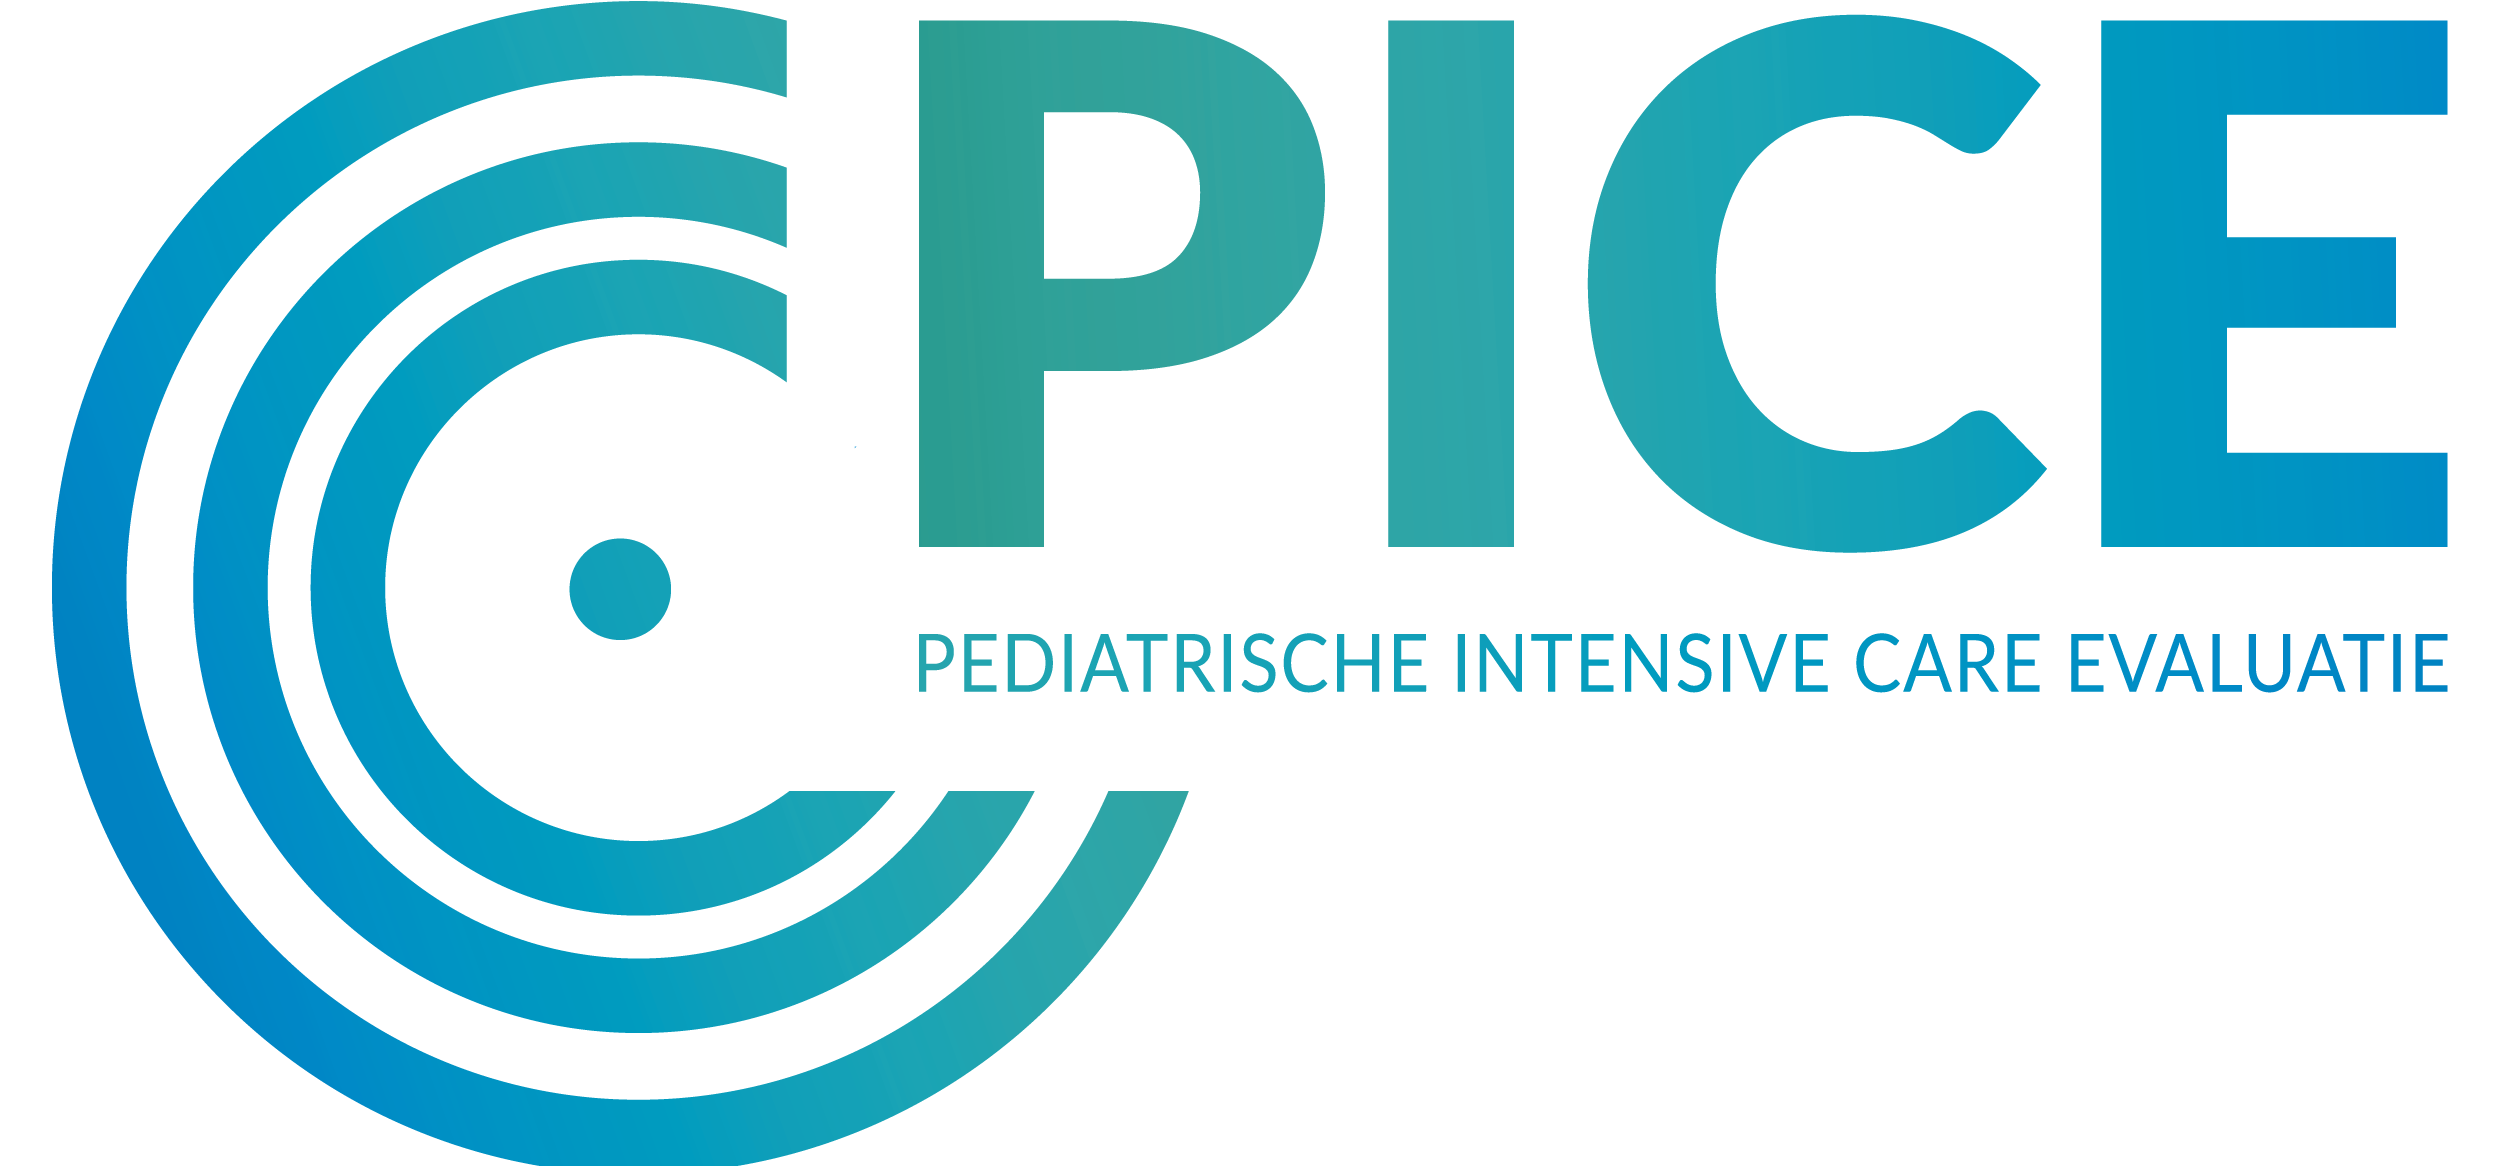 PICE Pediatrische Intensive care evaluatie